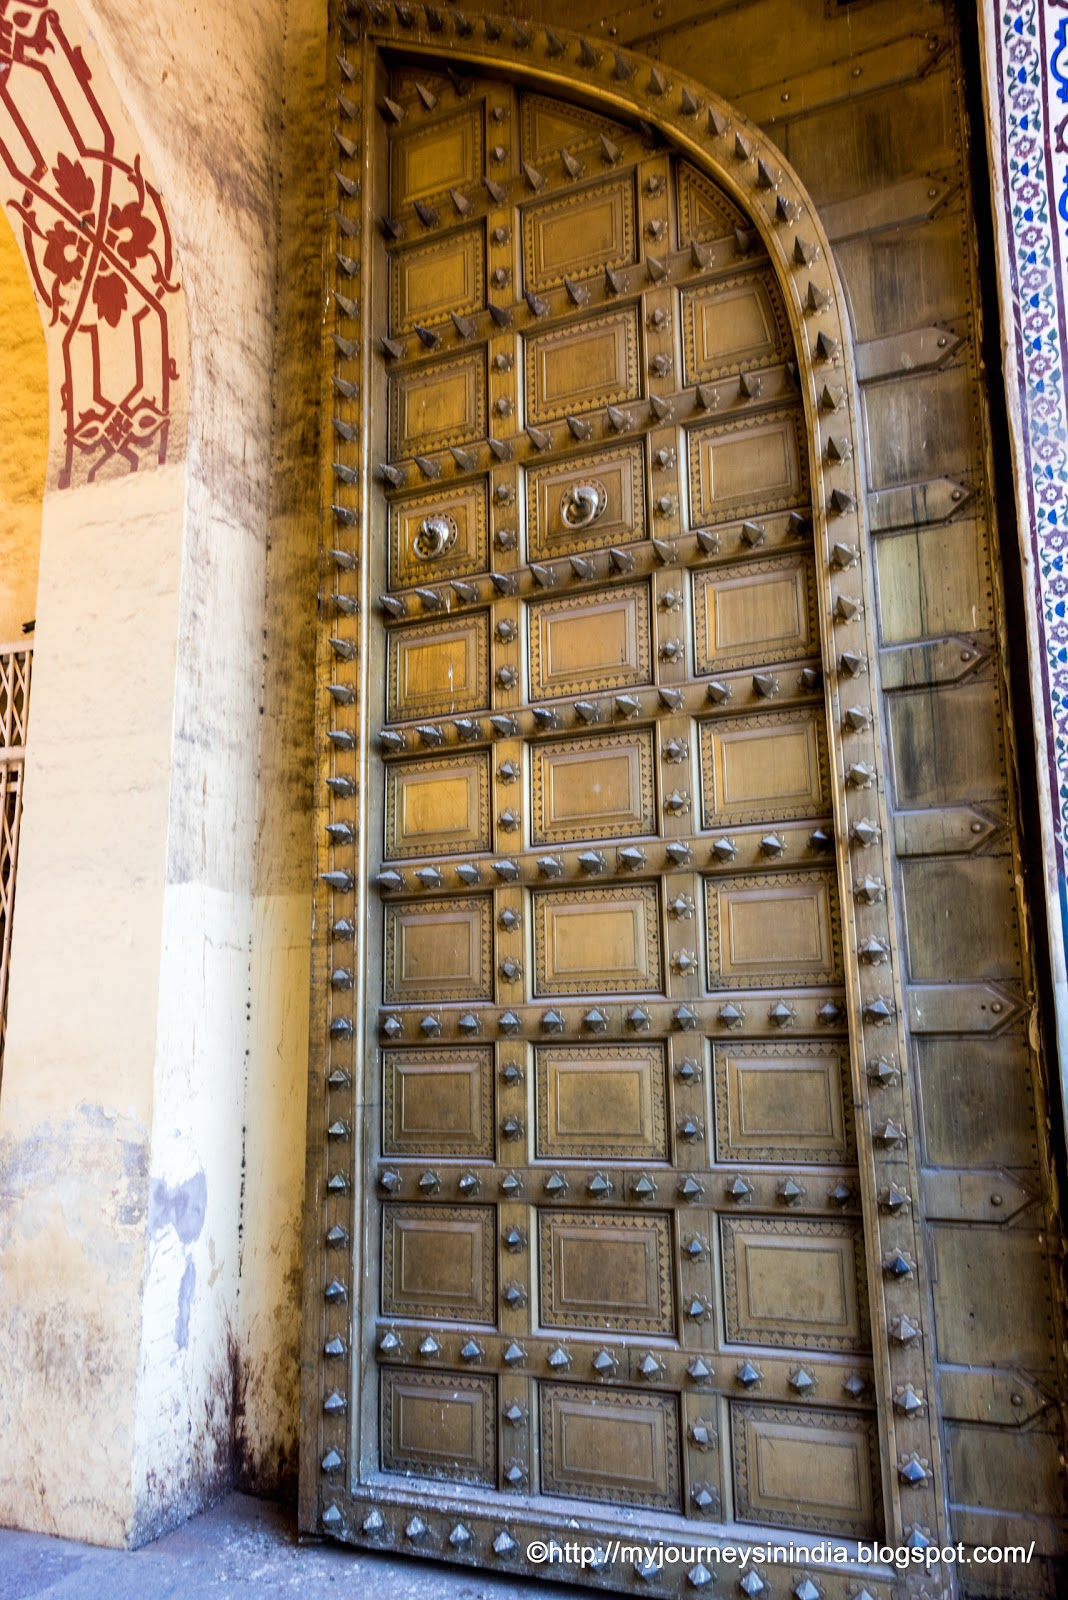 Giant Bronze Doors at City Palace Jaipur